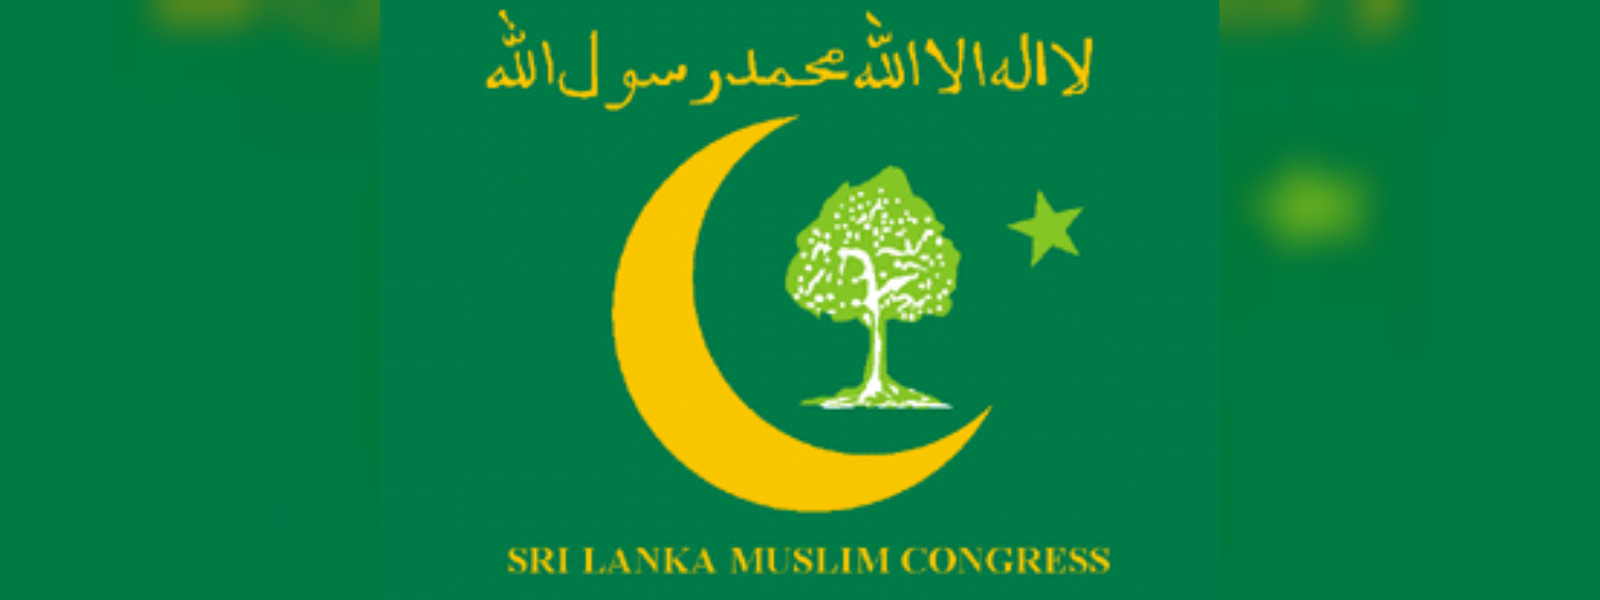 SLMC decides not to take up Ministerial posts